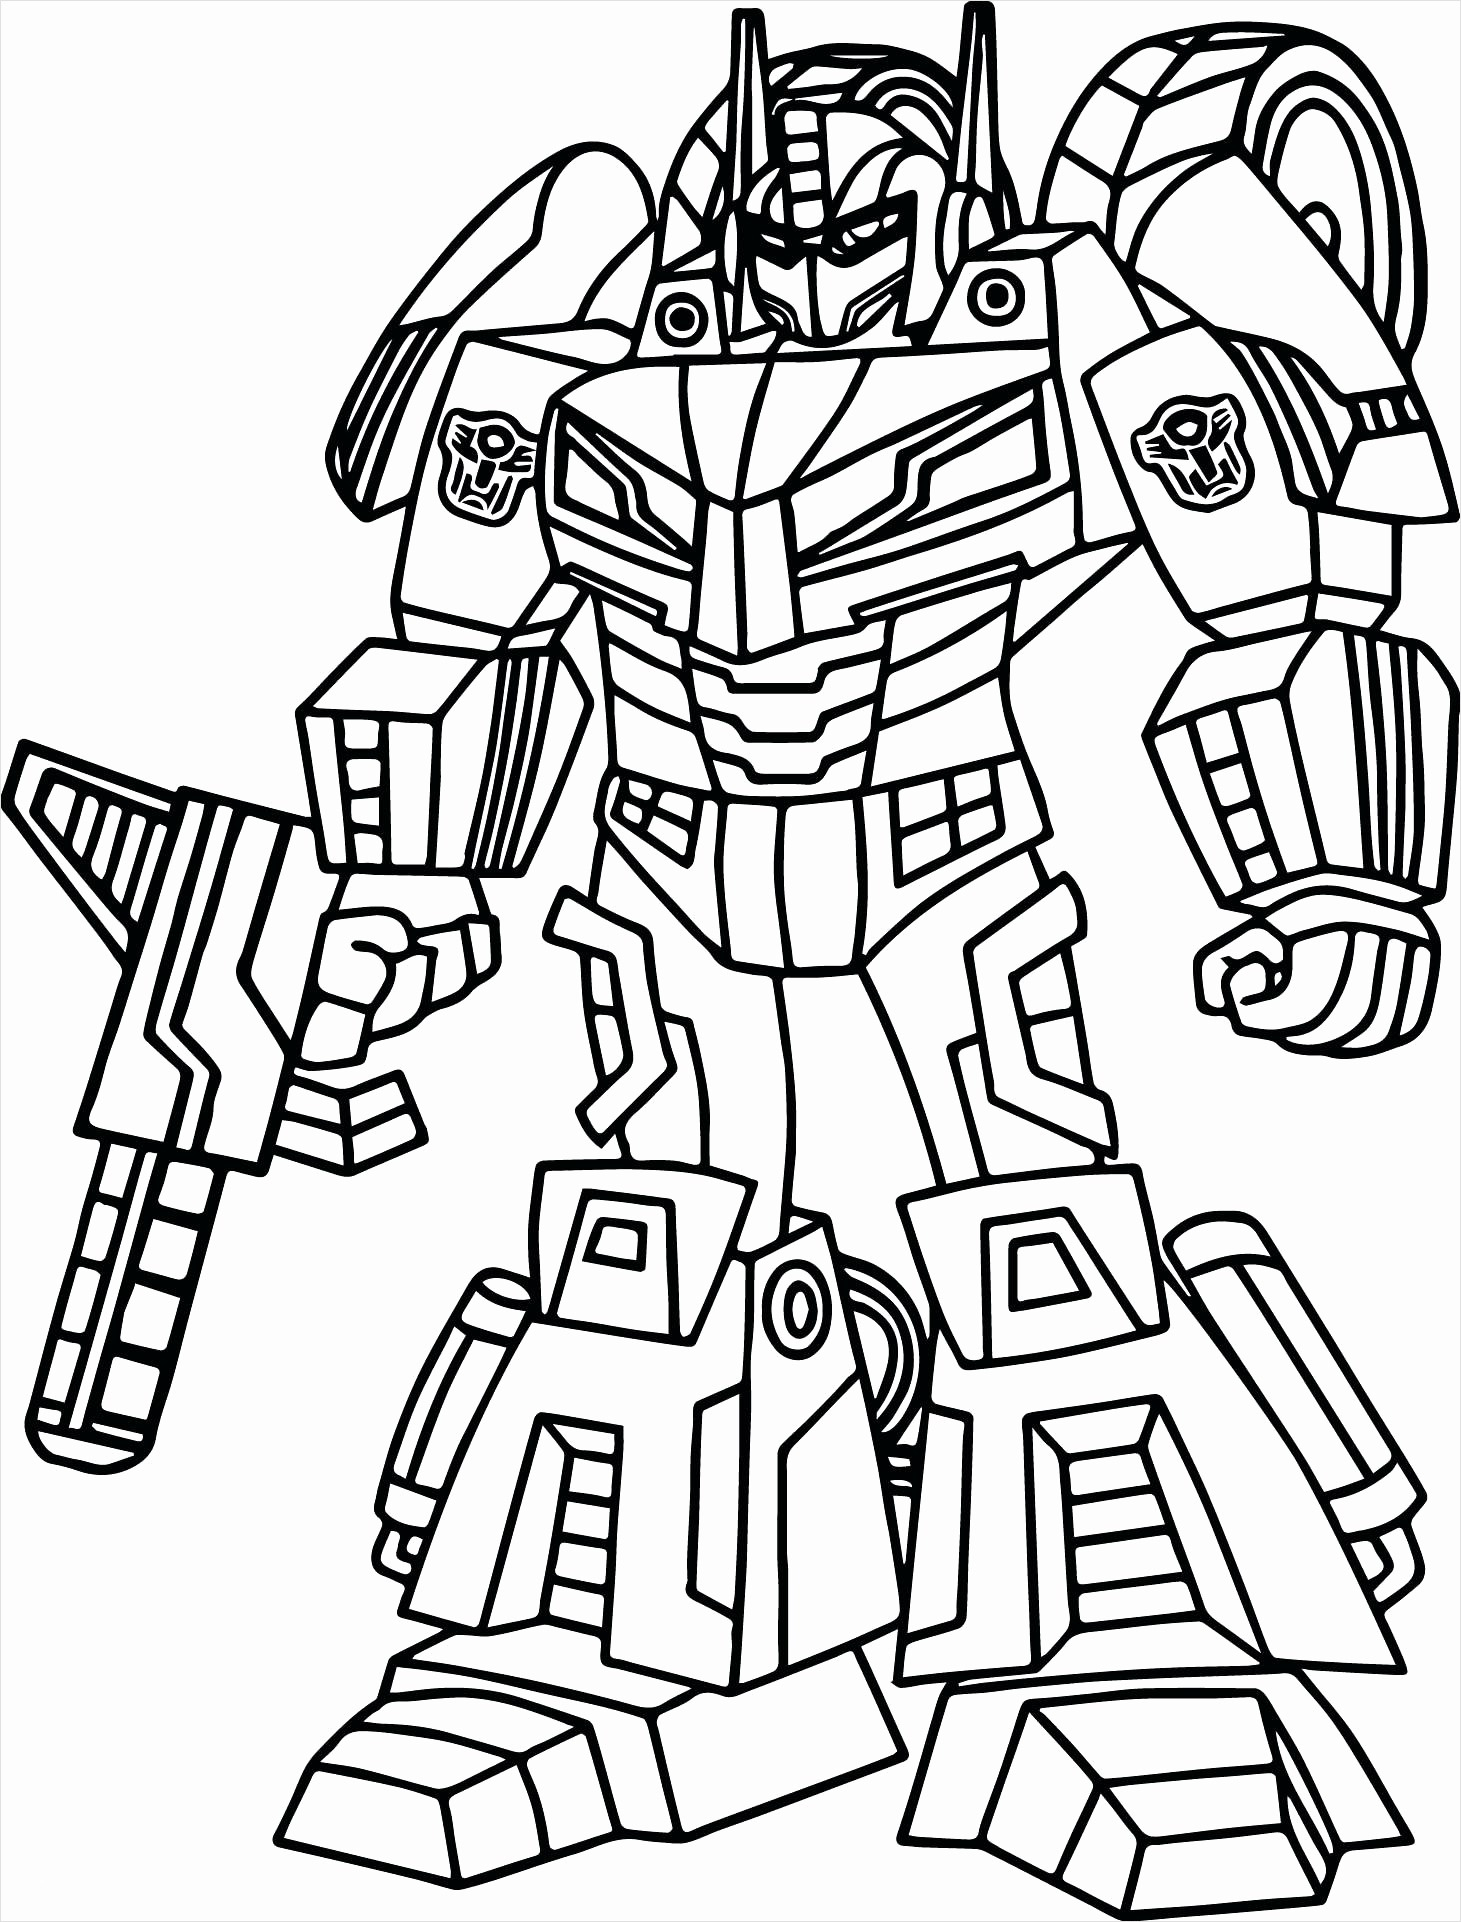 Bumblebee Coloring Pages For Kids Novocom Top